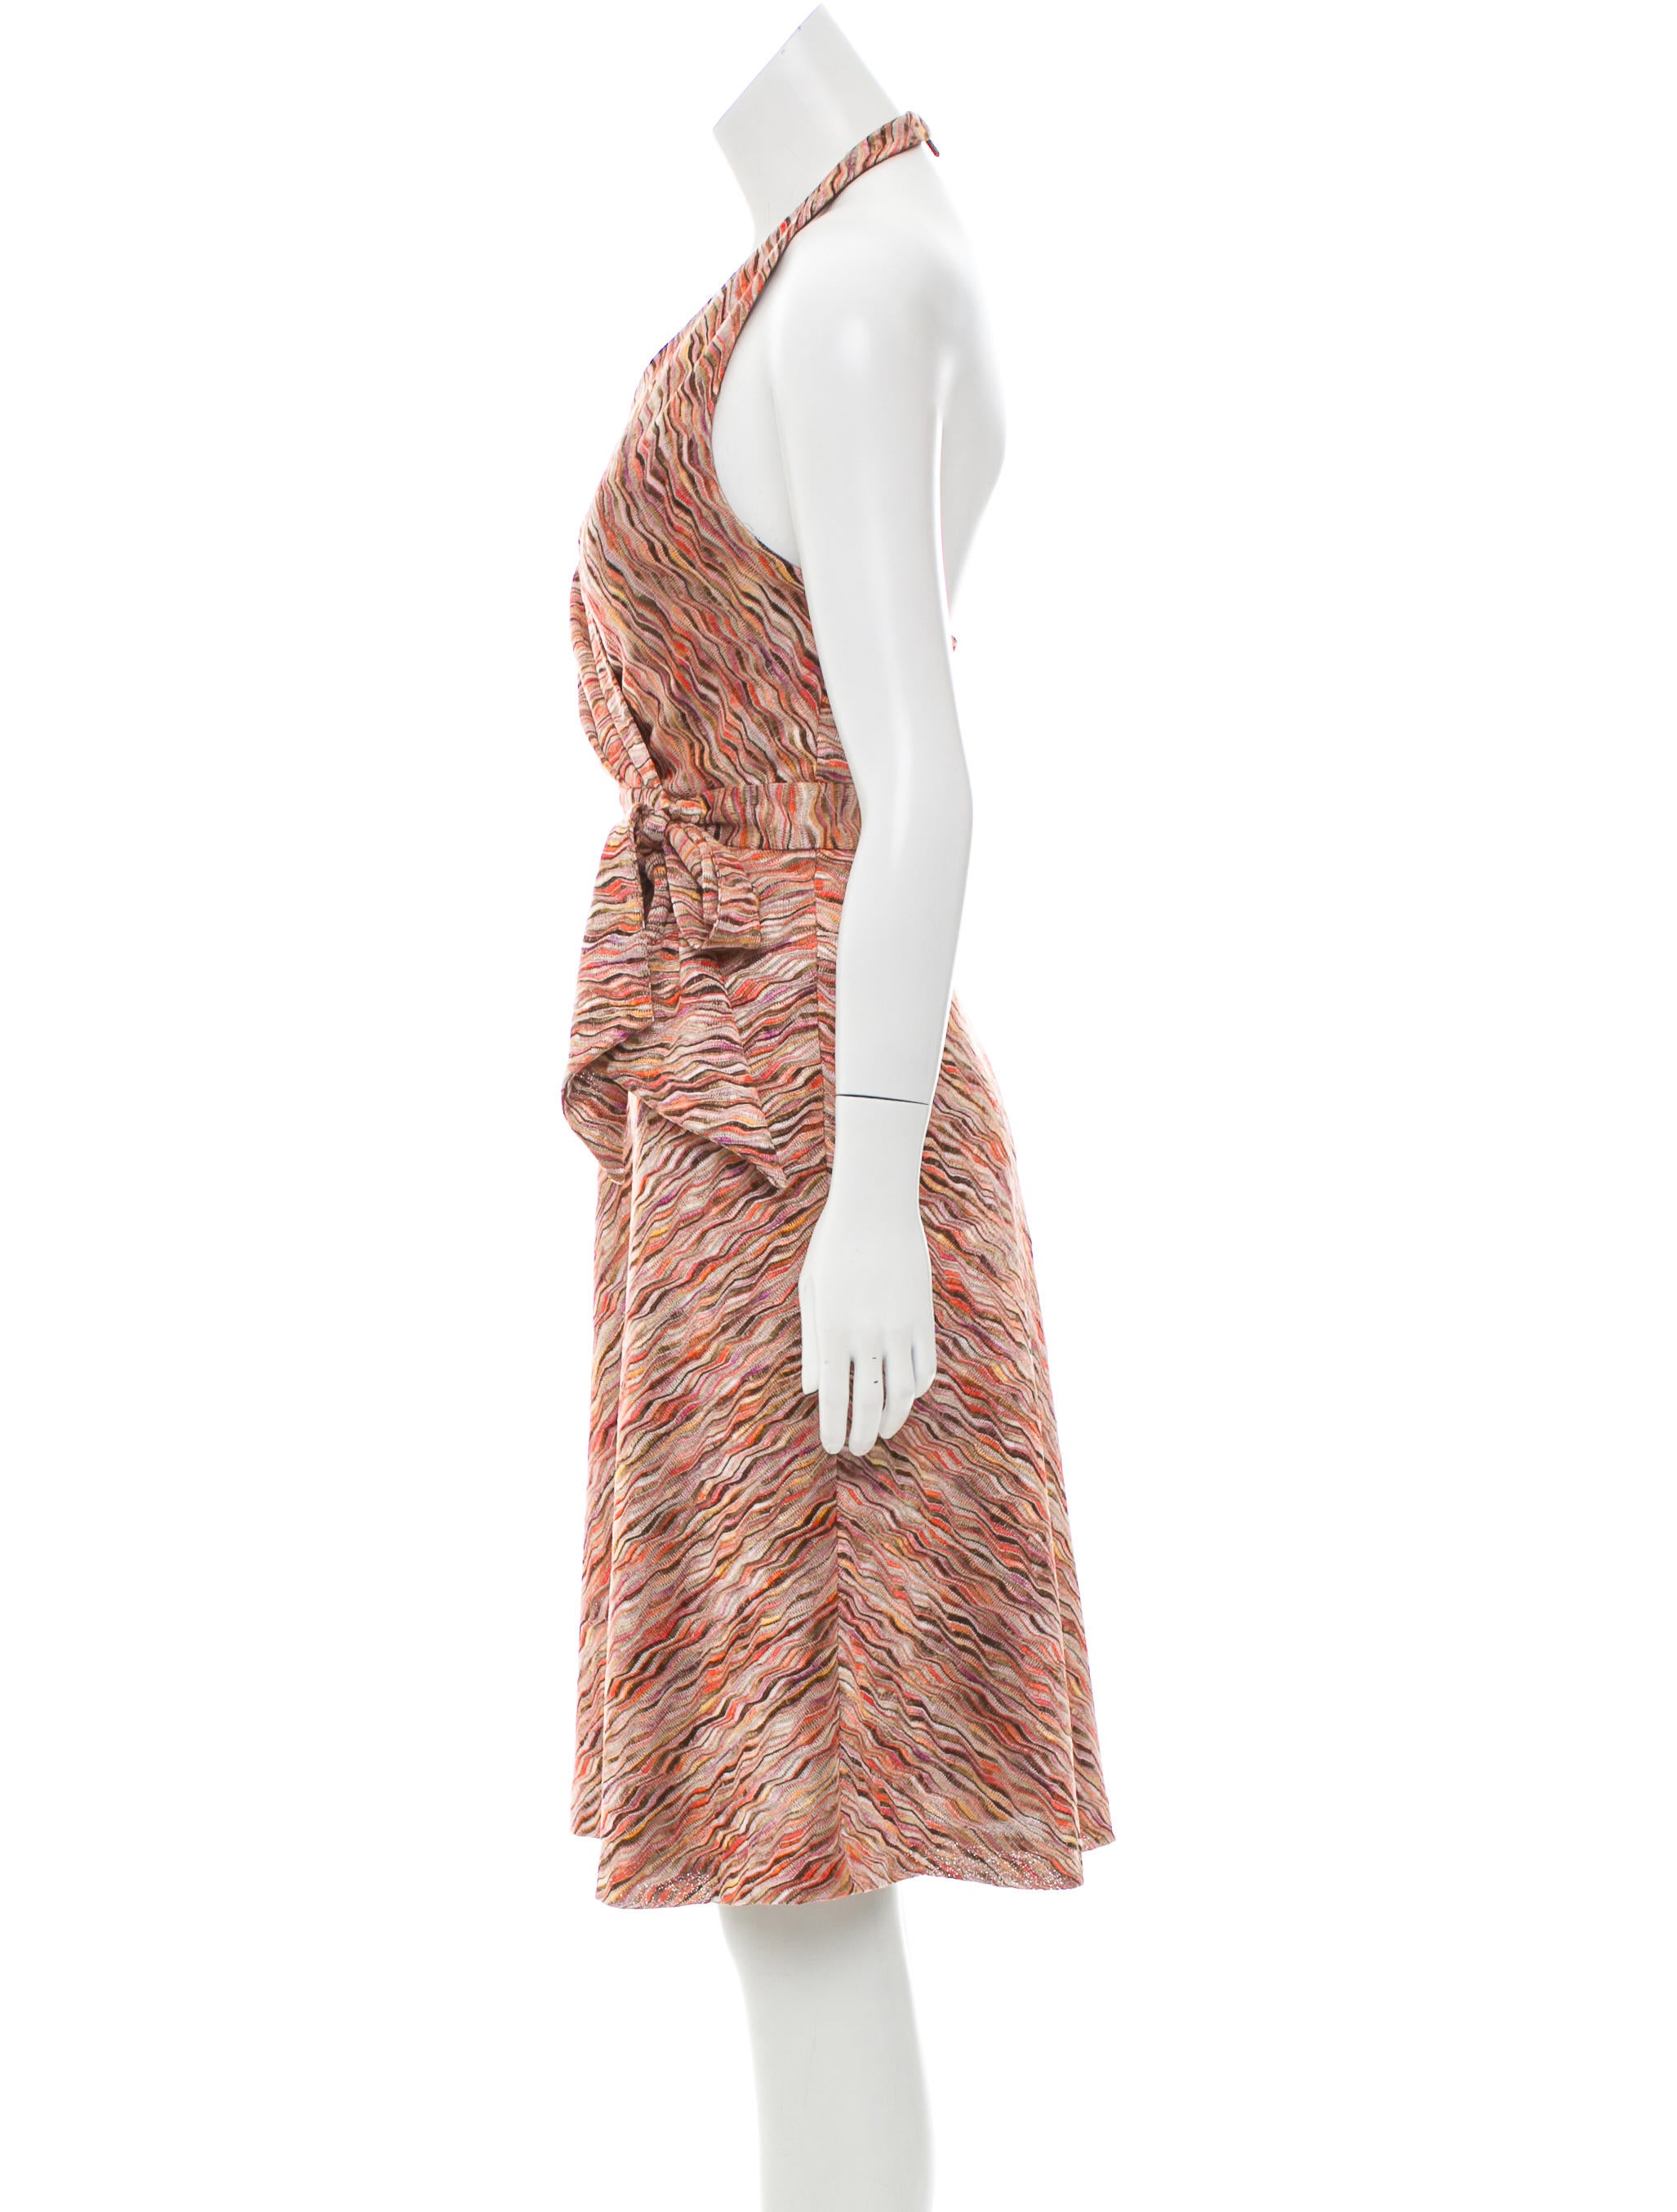 Kay Unger Patterned Halter Dress - Clothing - WKU20139 | The RealReal